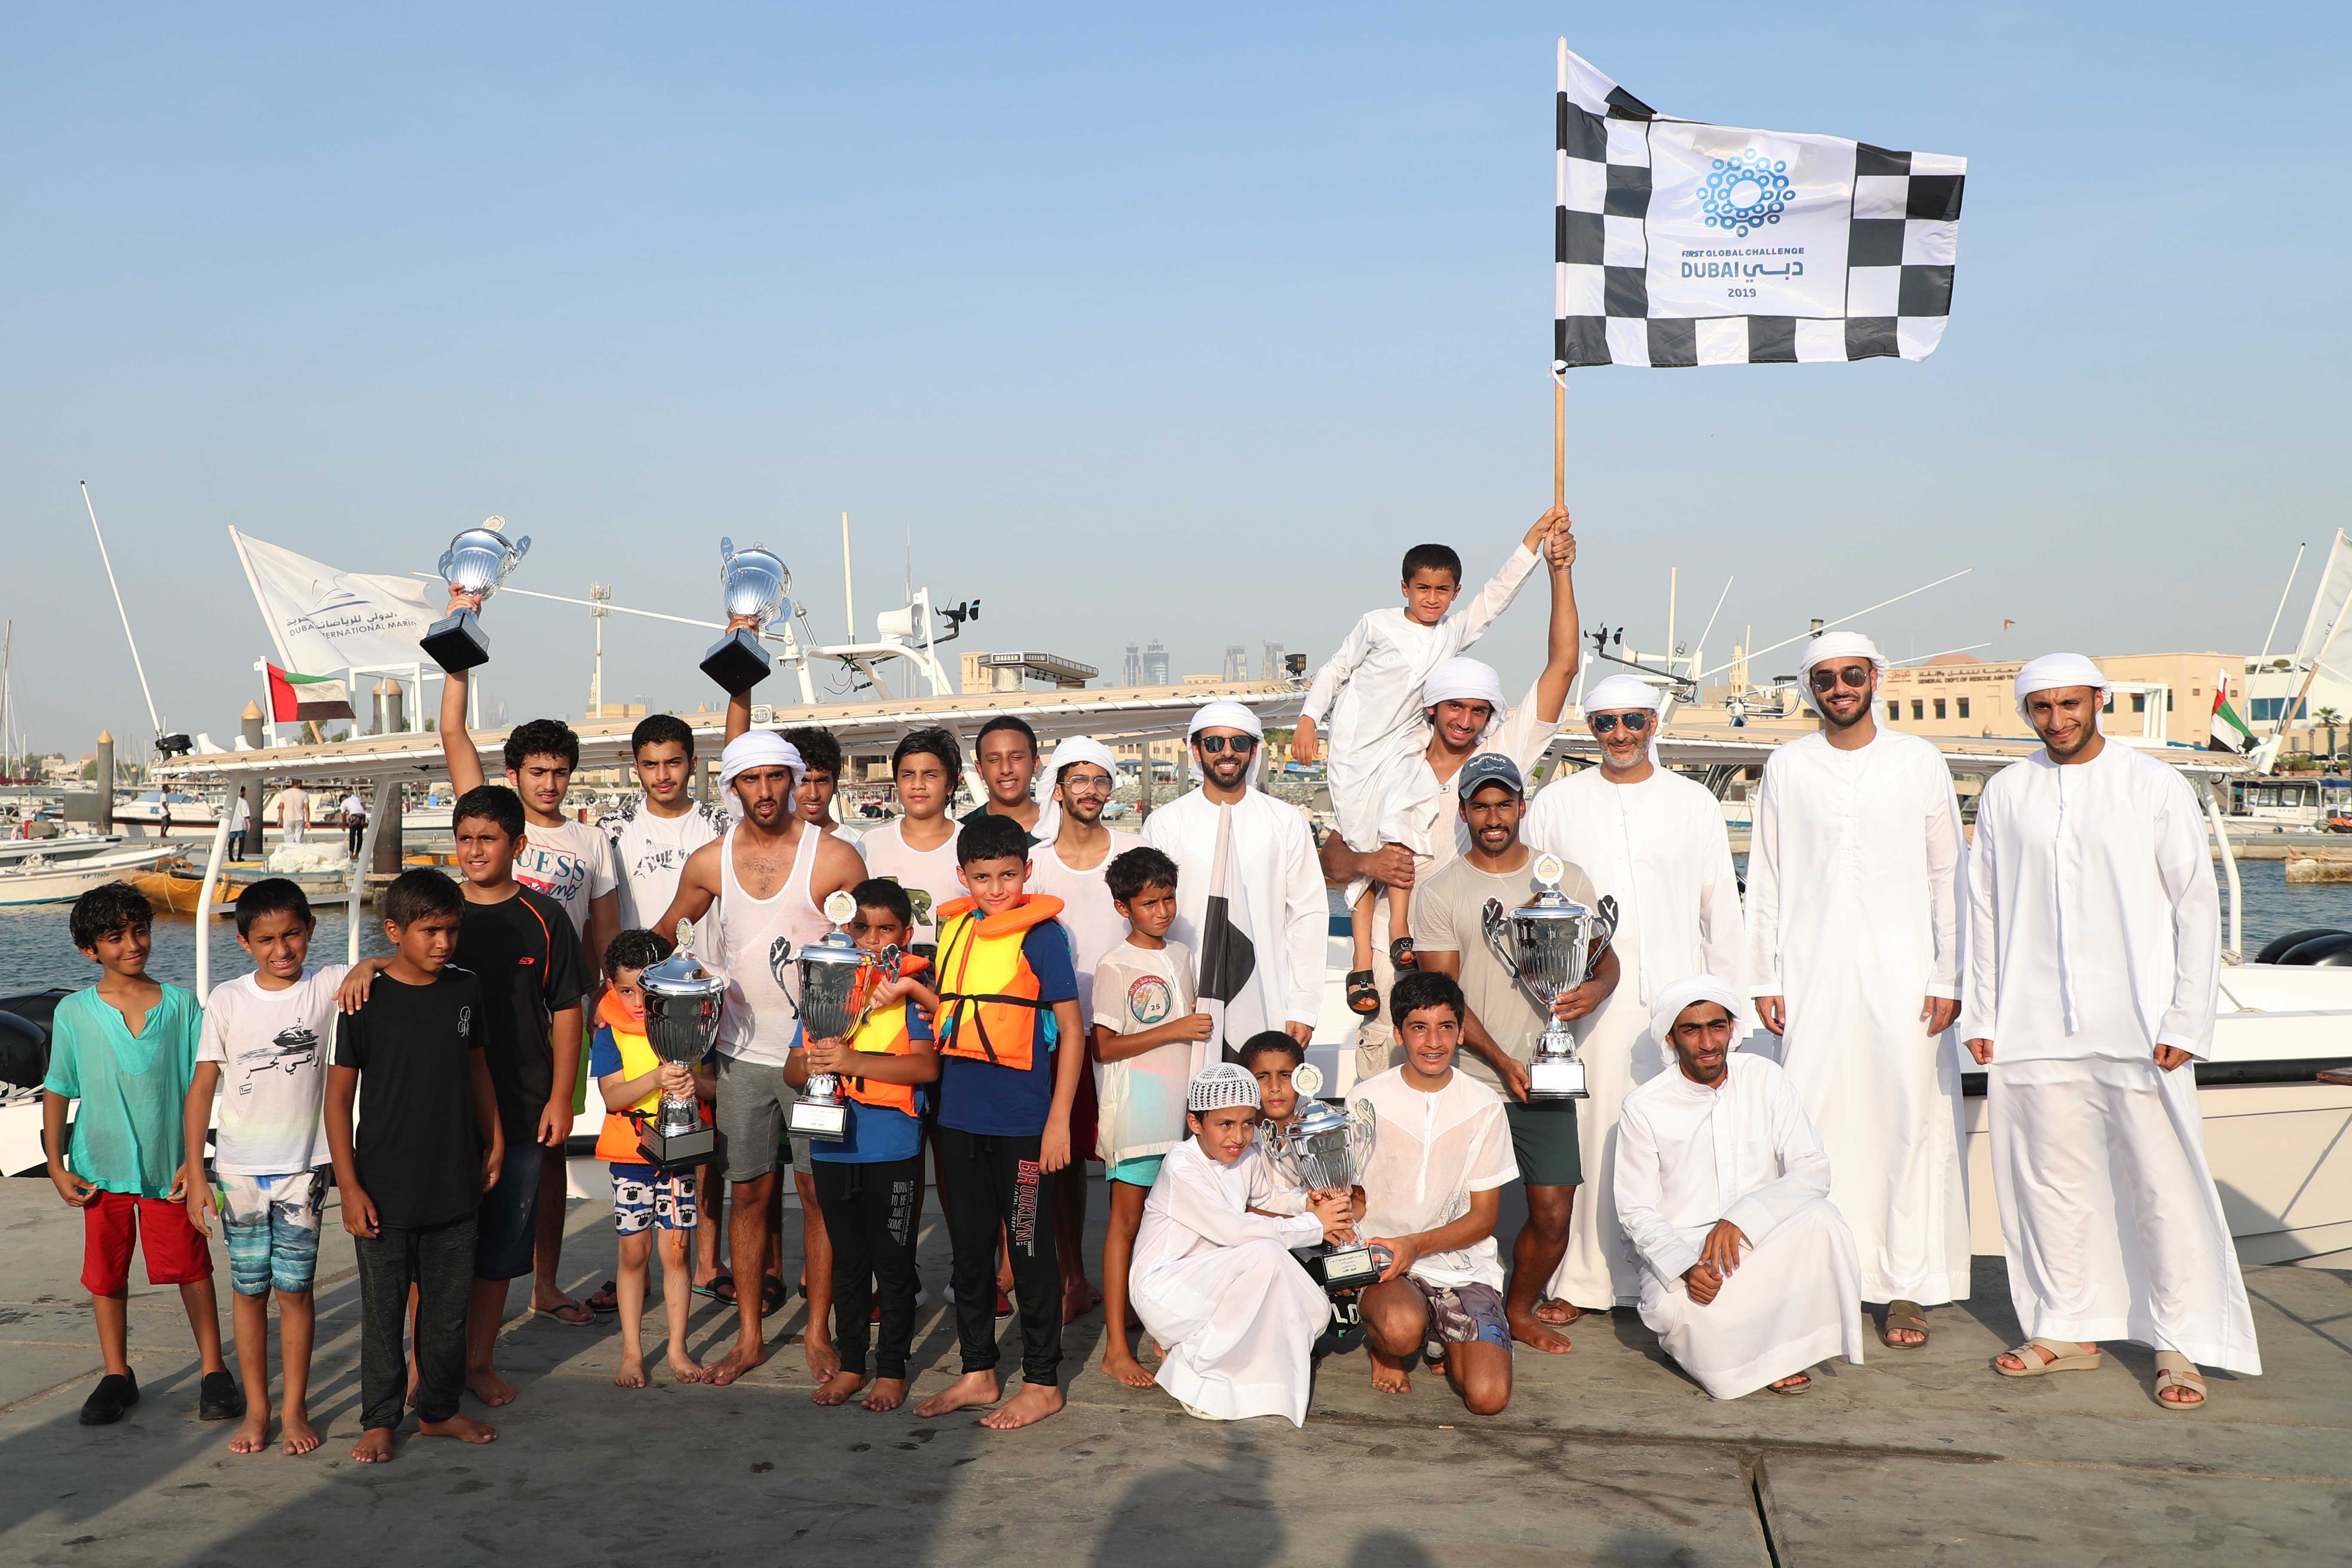 Al Asifa (118) and Al Fahad (79) Champion of the 22ft Dhow Race